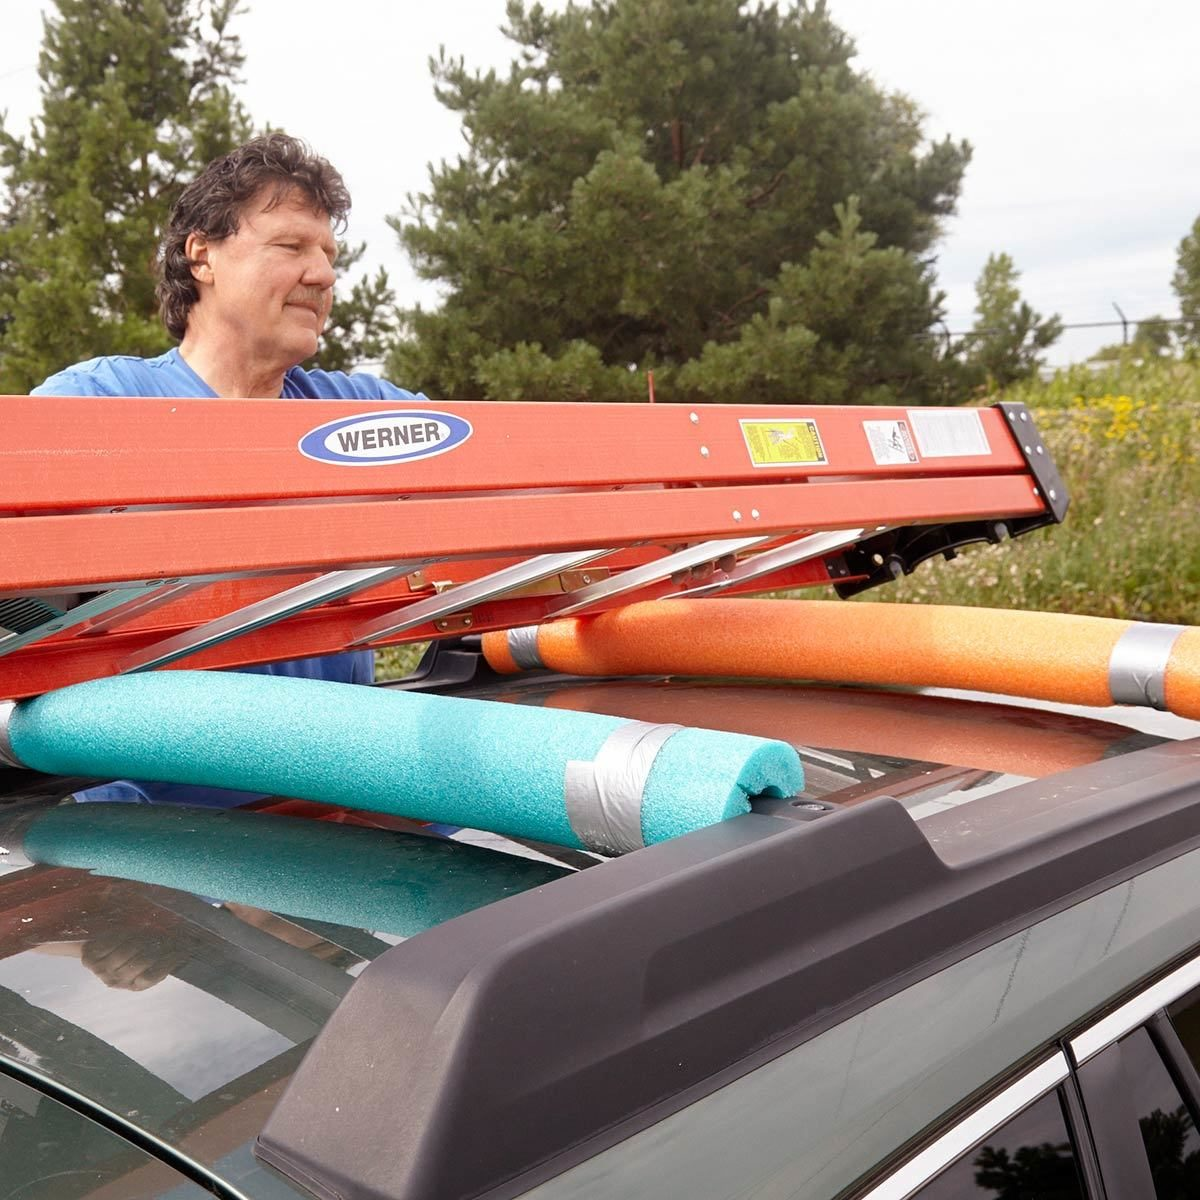 Luggage Rack Protector pool noodles